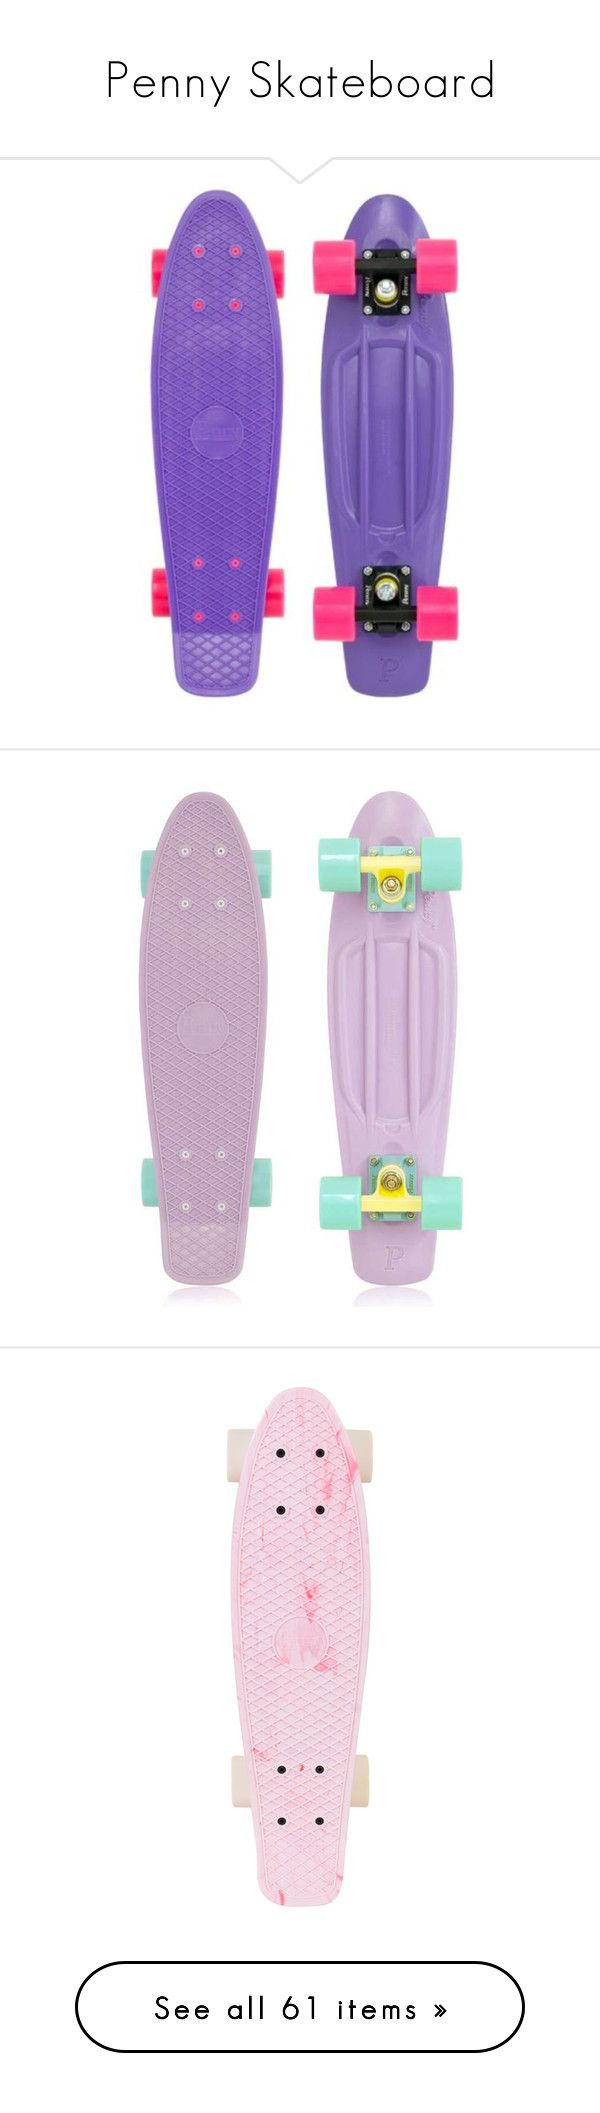 """""""Penny Skateboard"""" by starwars3340 ❤ liked on Polyvore featuring skateboards, penny boards, accessories, other, skate, fillers, quotes, phrase, saying and scribble"""